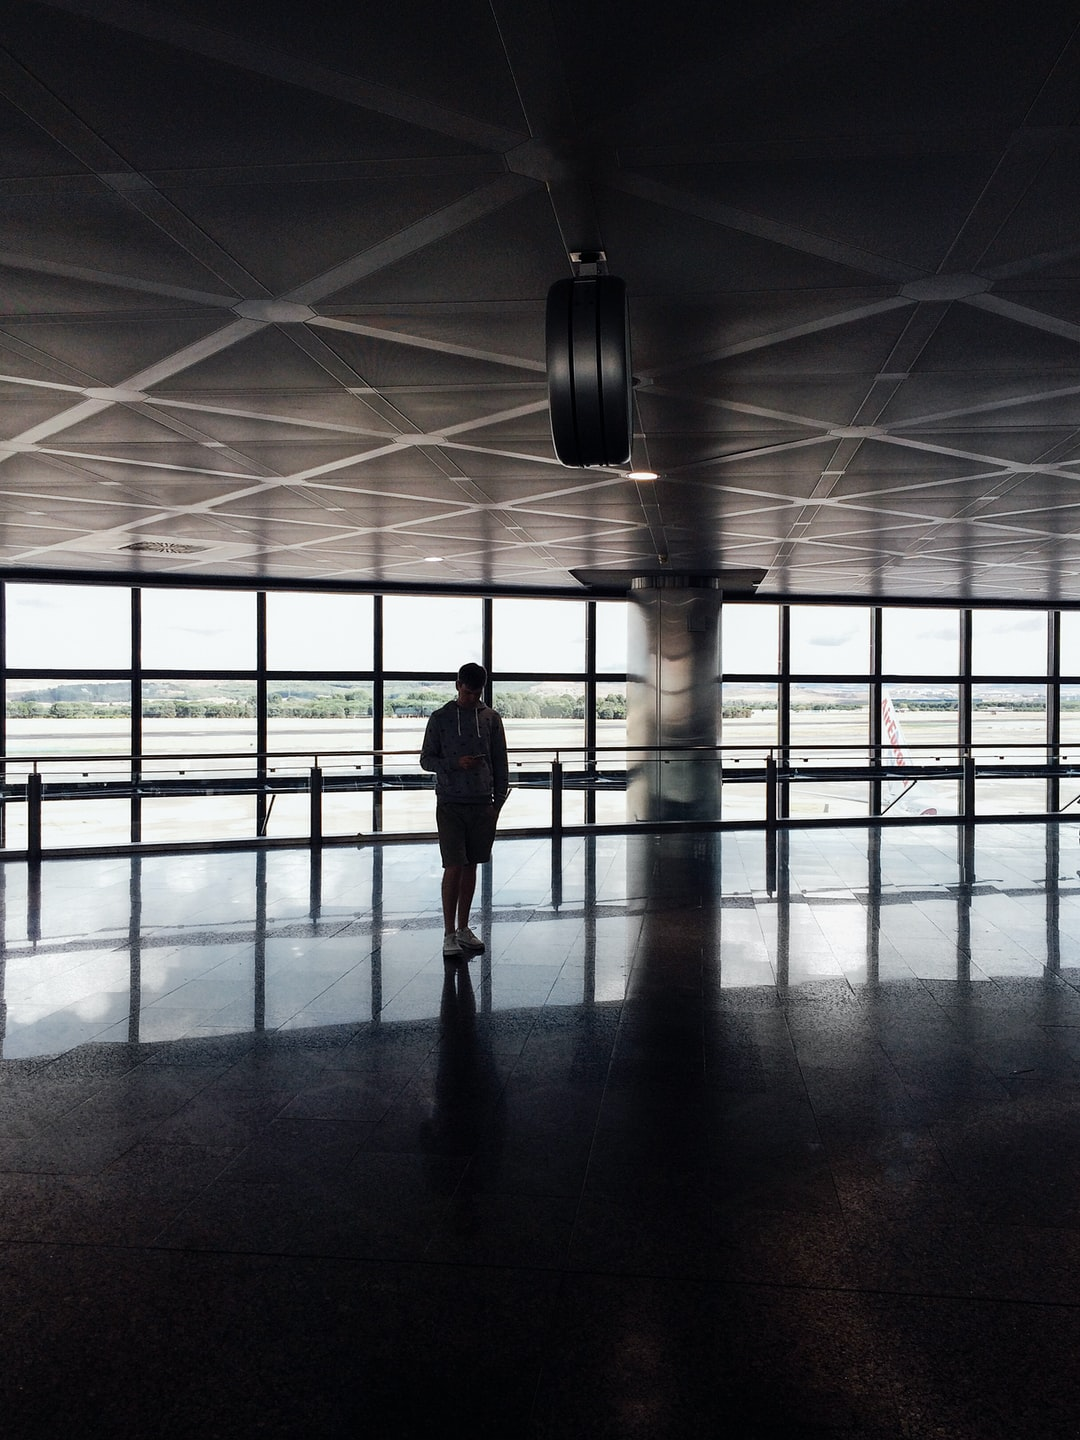 Silhouette at the Airport